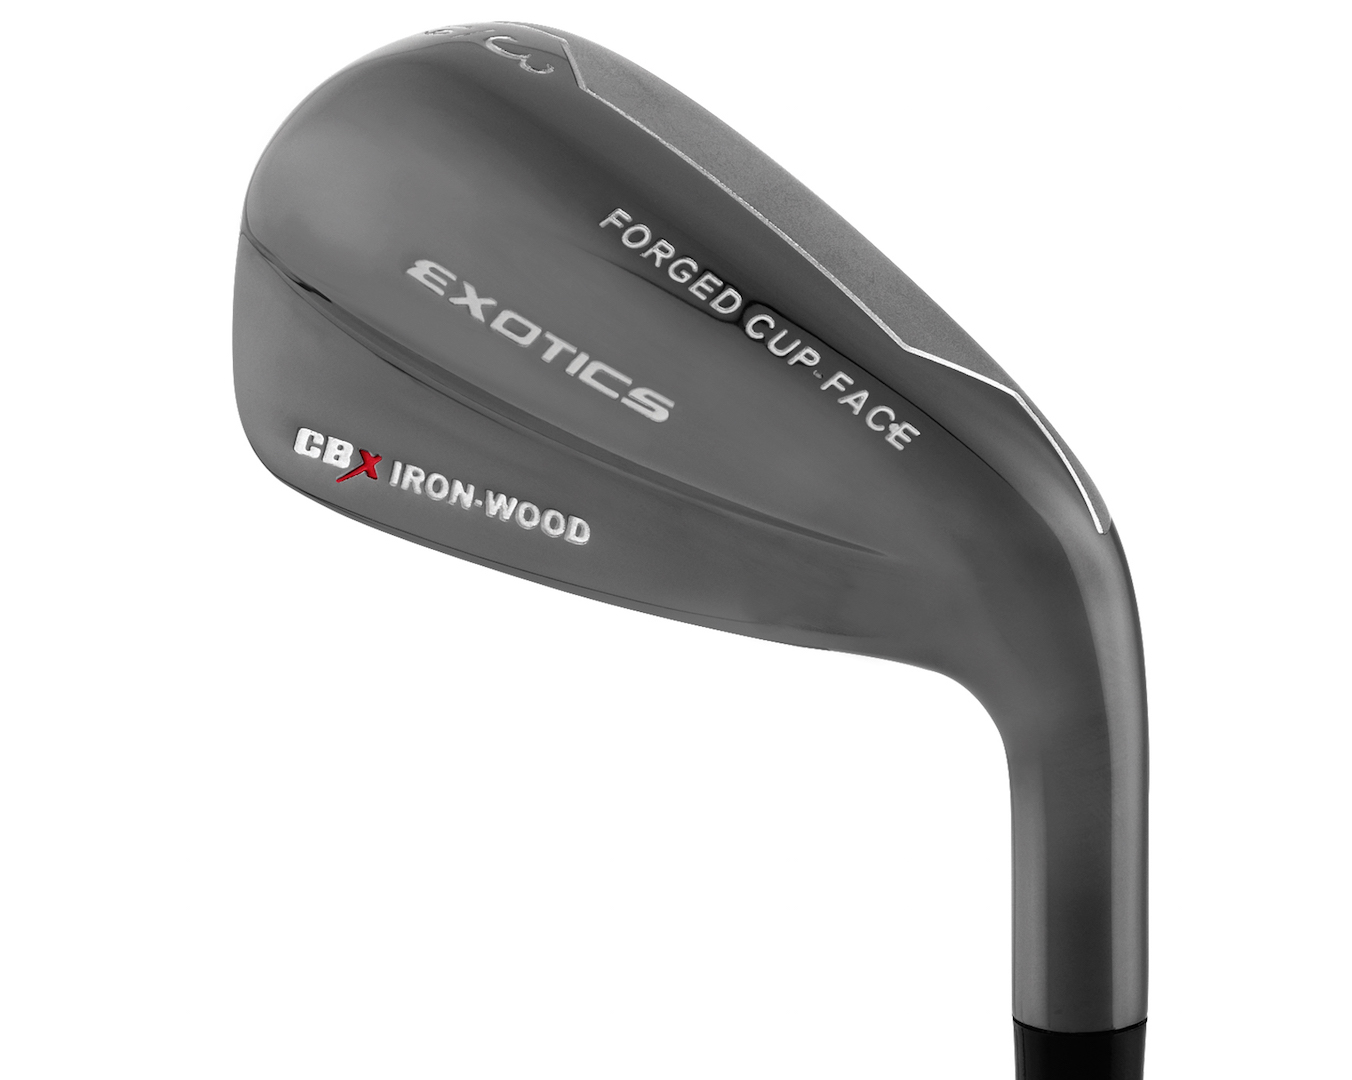 Tour Edge Exotics launch new CBX Iron Wood